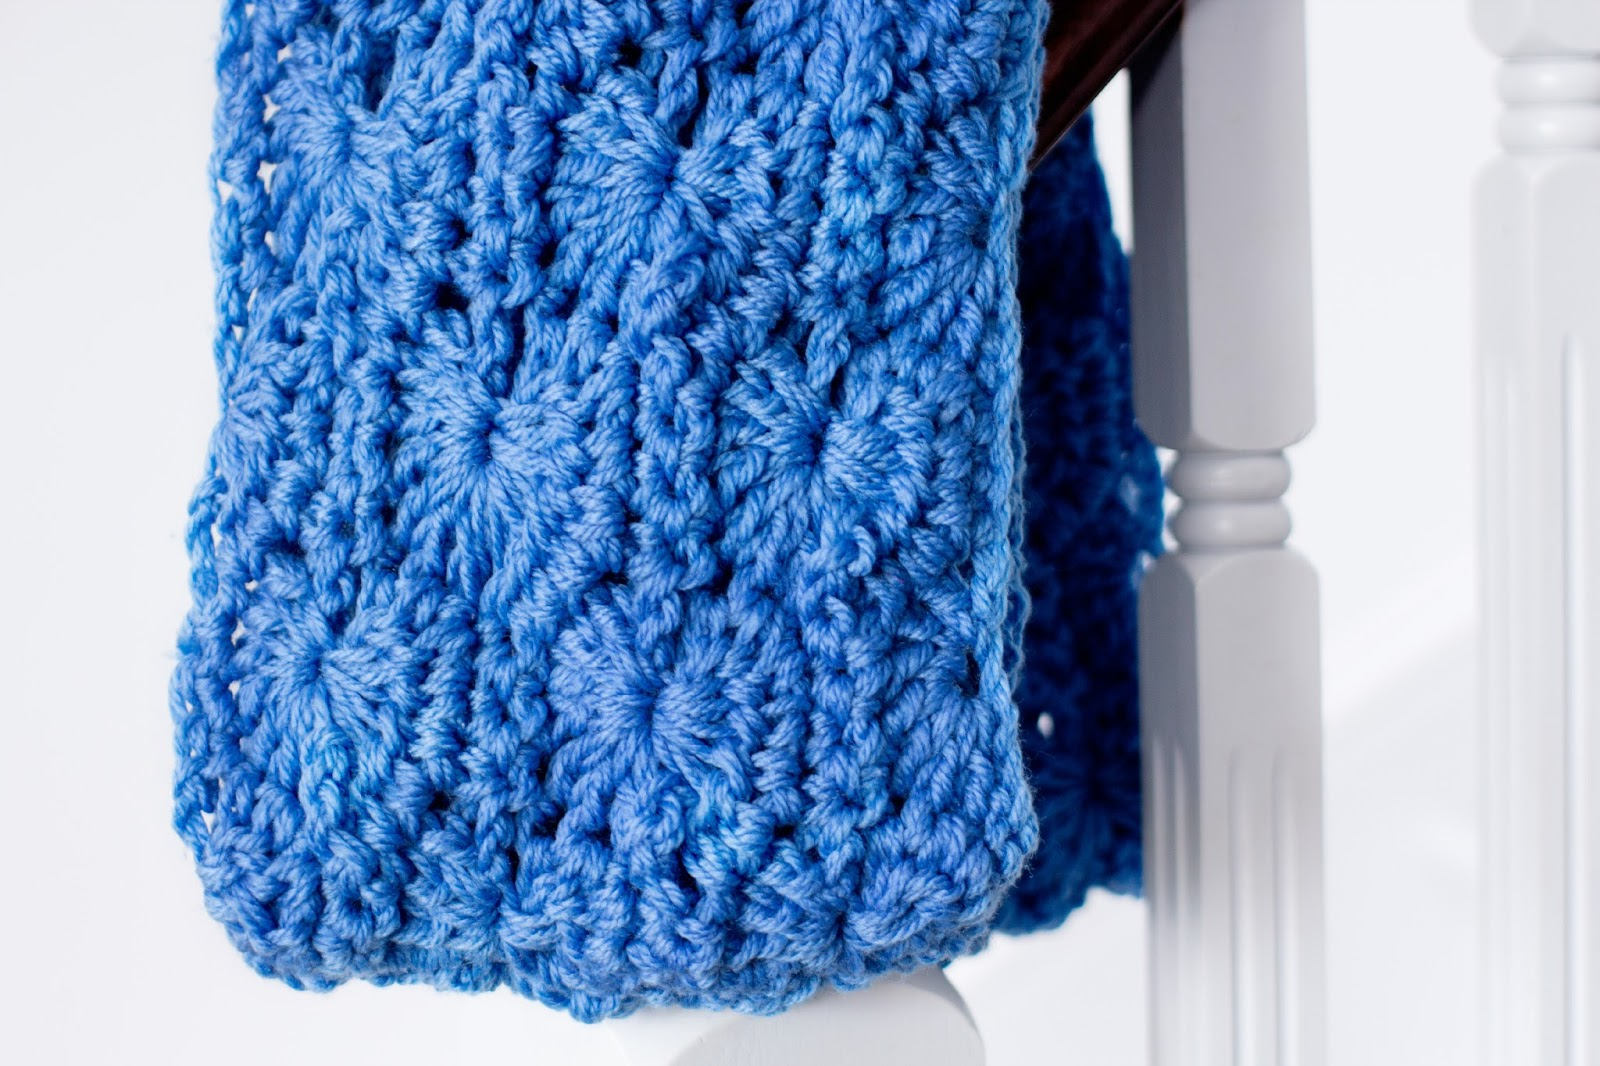 Crochet Patterns Stitches : ... Craft, Crochet, Create: A Unique Gift ~ Infinity Scarf Crochet Pattern